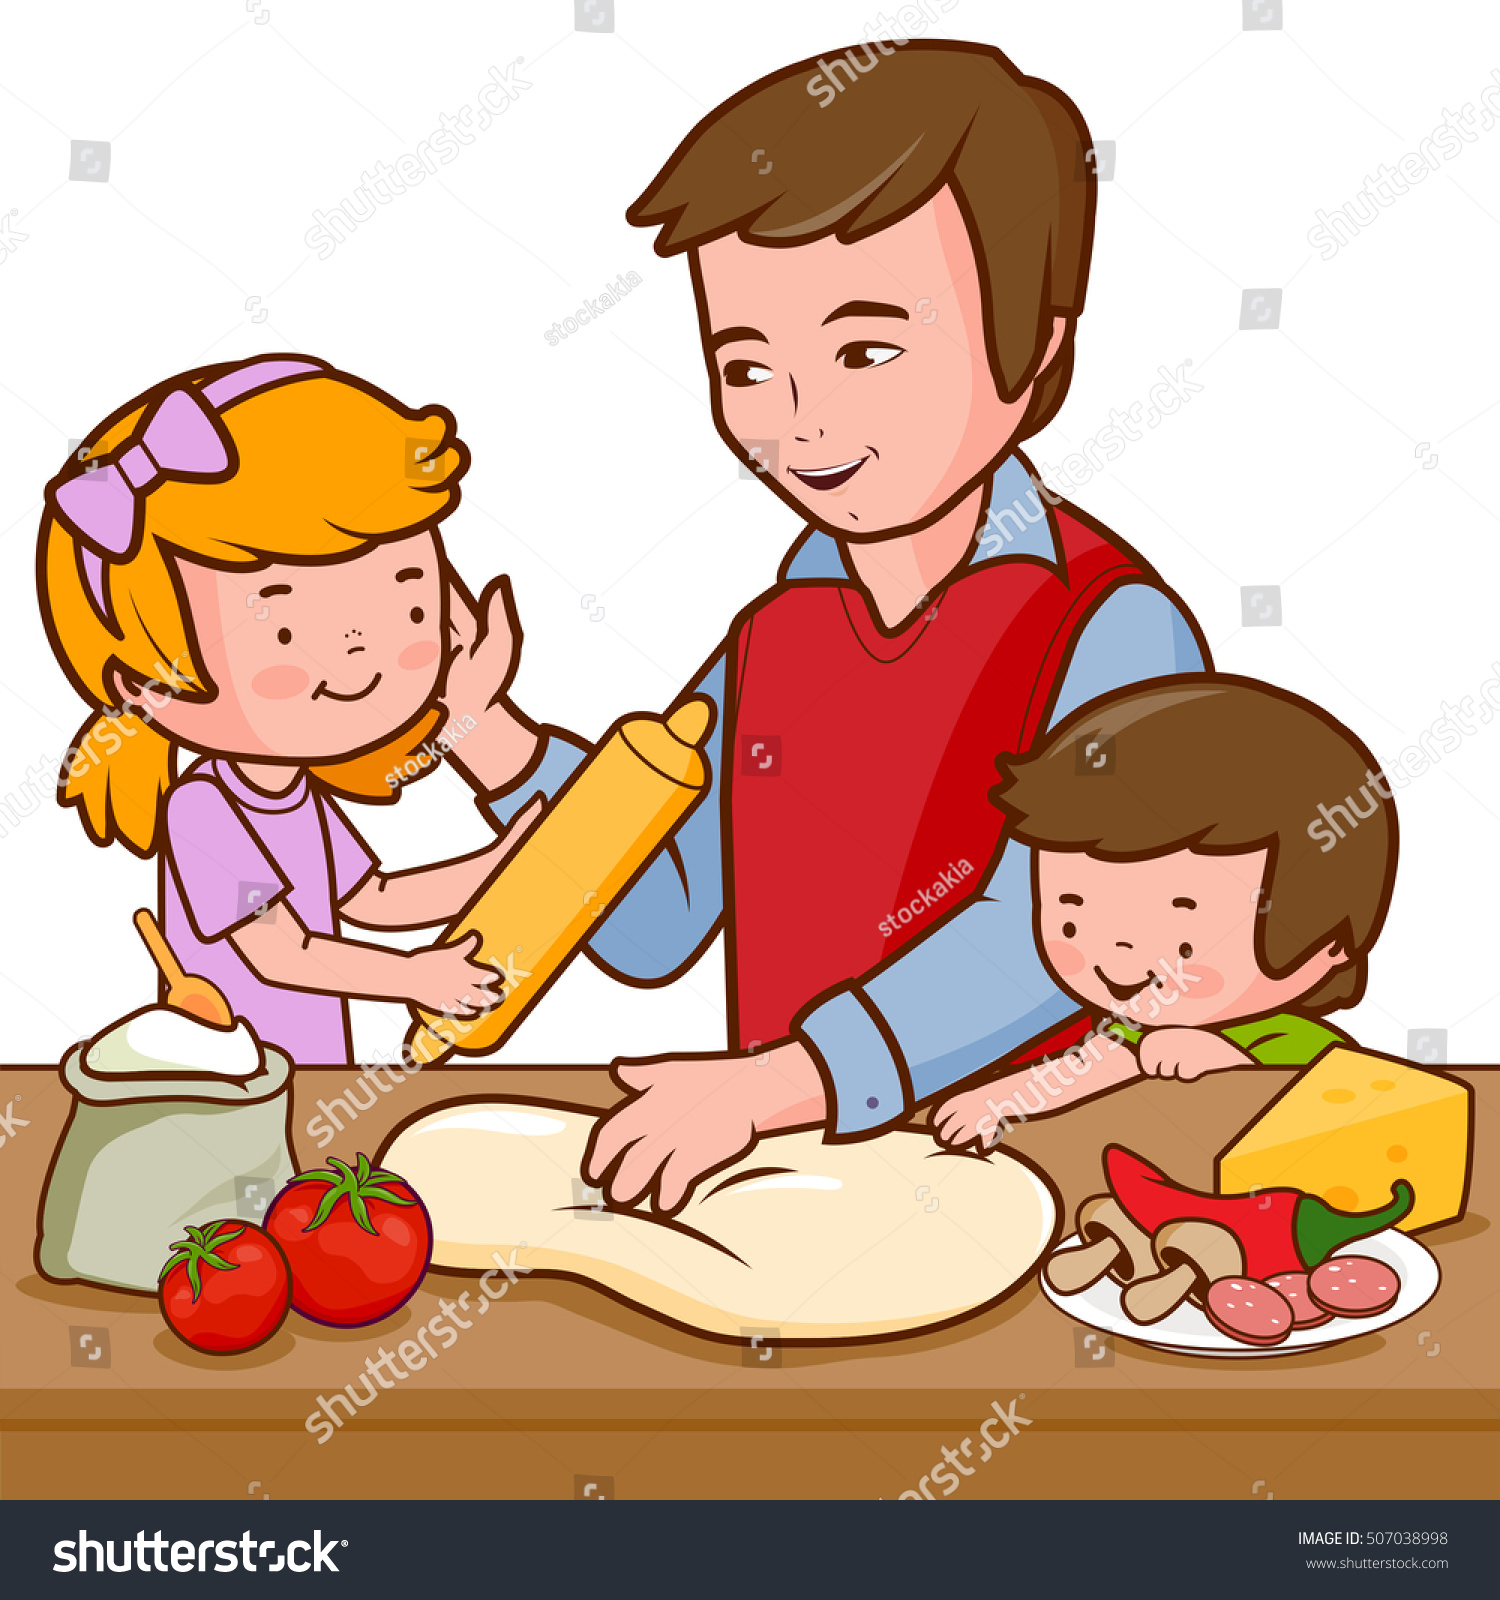 Selection of cartoons on cooking kitchens food and eating - Father And Children Cooking Pizza In The Kitchen